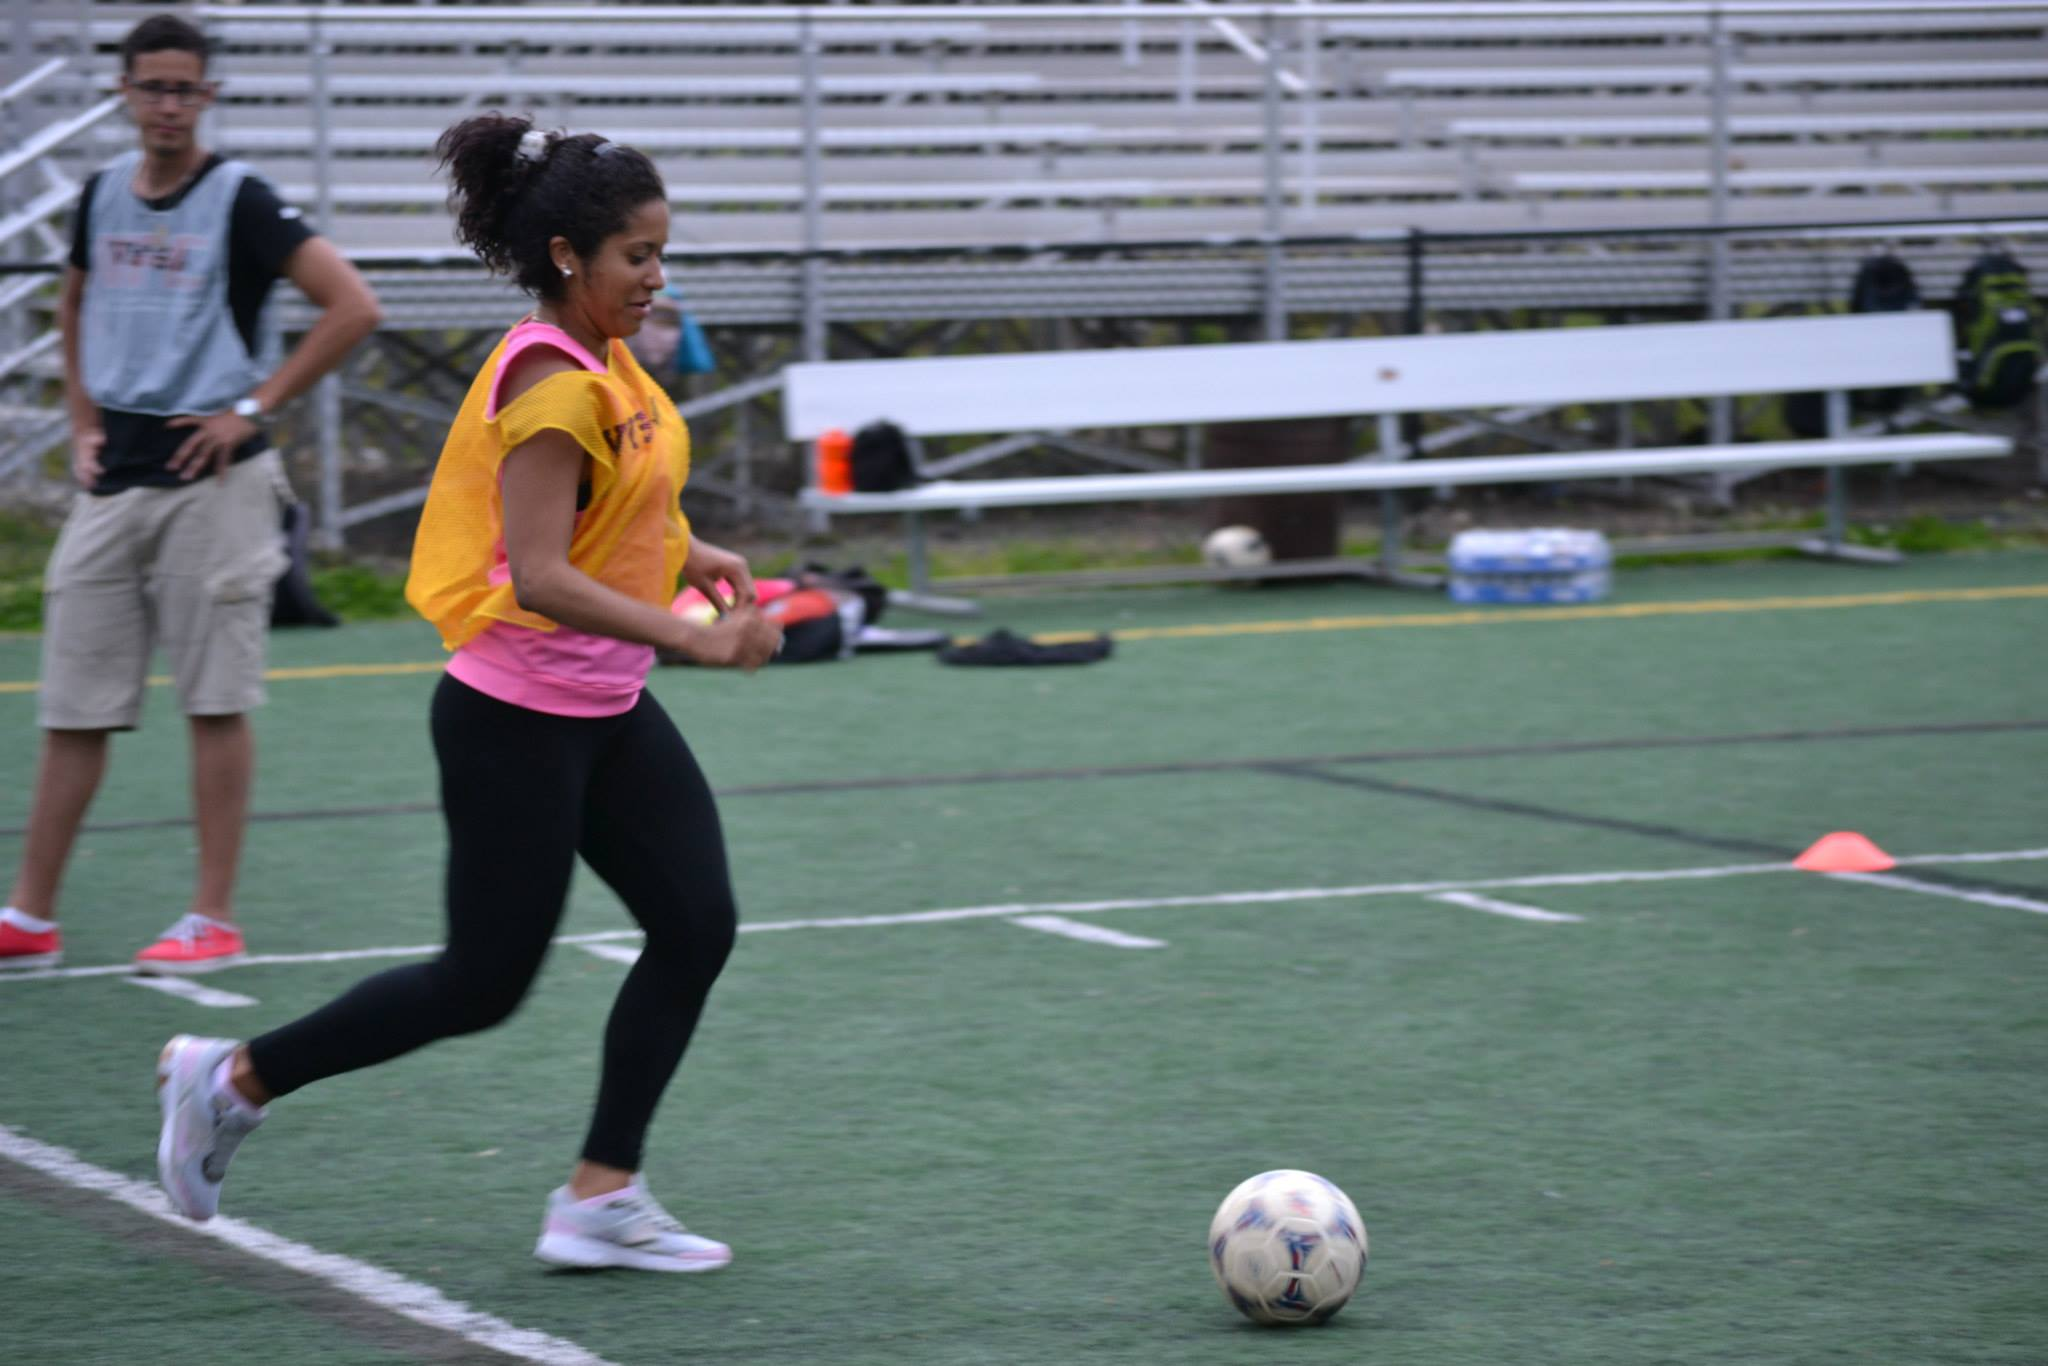 A sports visitor running down the ball during a drill